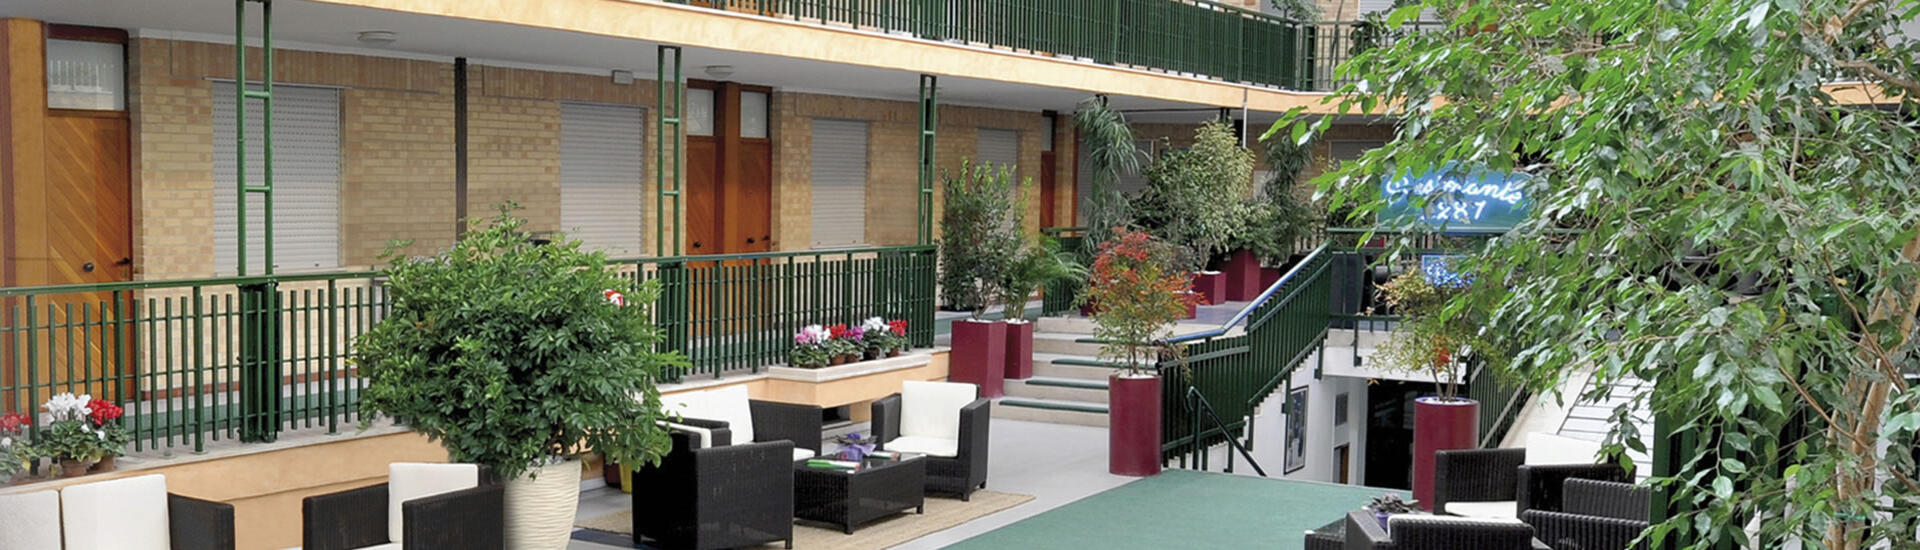 holidayfamilyvillage fr appart-hotel-marches 011